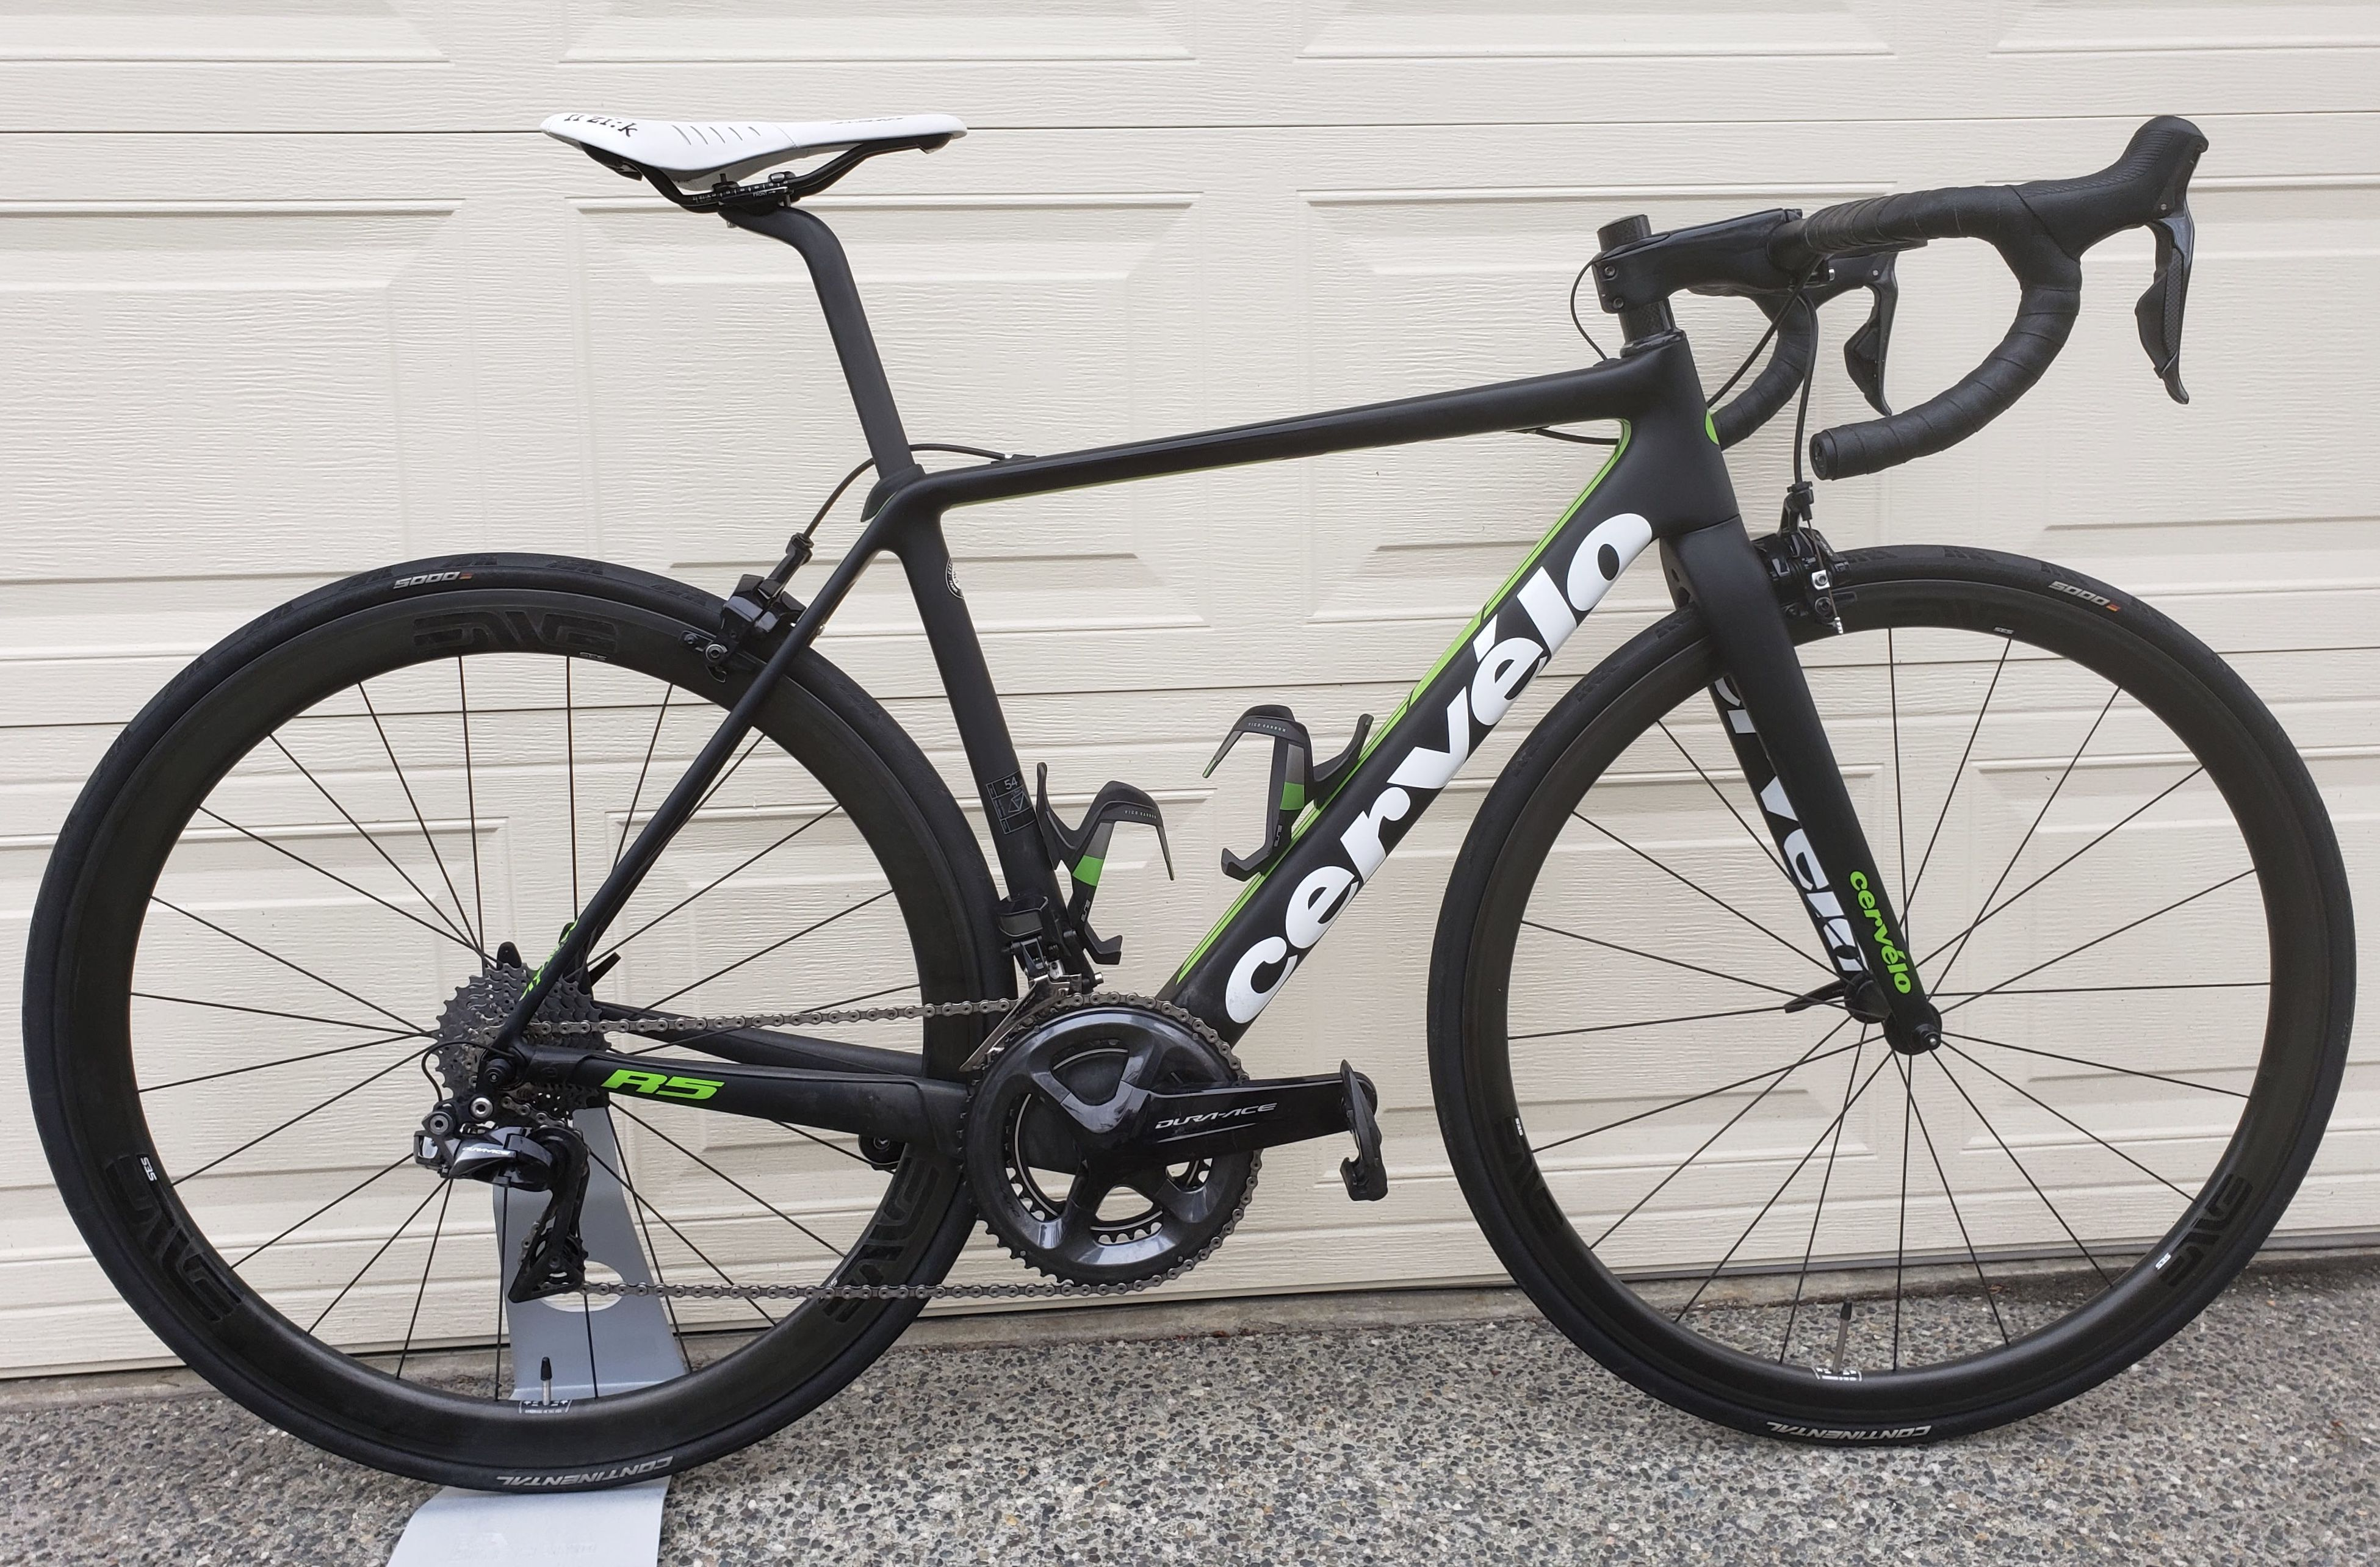 934060e901c 2018 Cervelo R5 Dura Ace Di2 Enve SES 3.4 | Bikes | Bike, Bicycle ...